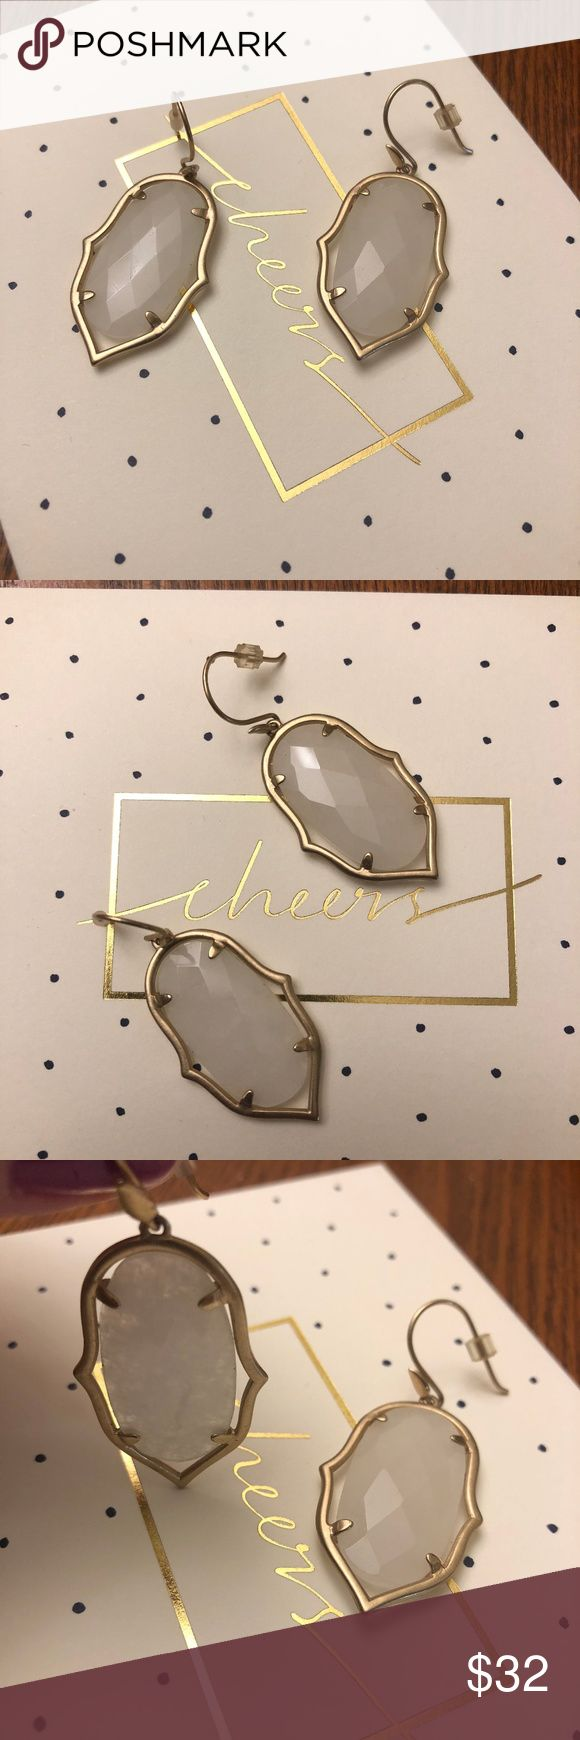 """Stella & Dot Amala Chandelier Earrings - EUC Excellent Used Condition - no cracks in the stone.  Still available on S&D site for $59 plus tax/shipping.  Web description:  Hand-cut semi-precious white agate set in a semi shiny gold frame. Elegant drops for any occasion.  Semi Shiny Gold Finish  2"""" Length  Medium Weight Smoke and pet-free home - used as a sample - see my other listing for matching necklace.  Enjoy and thank you! Stella & Dot Jewelry Earrings"""